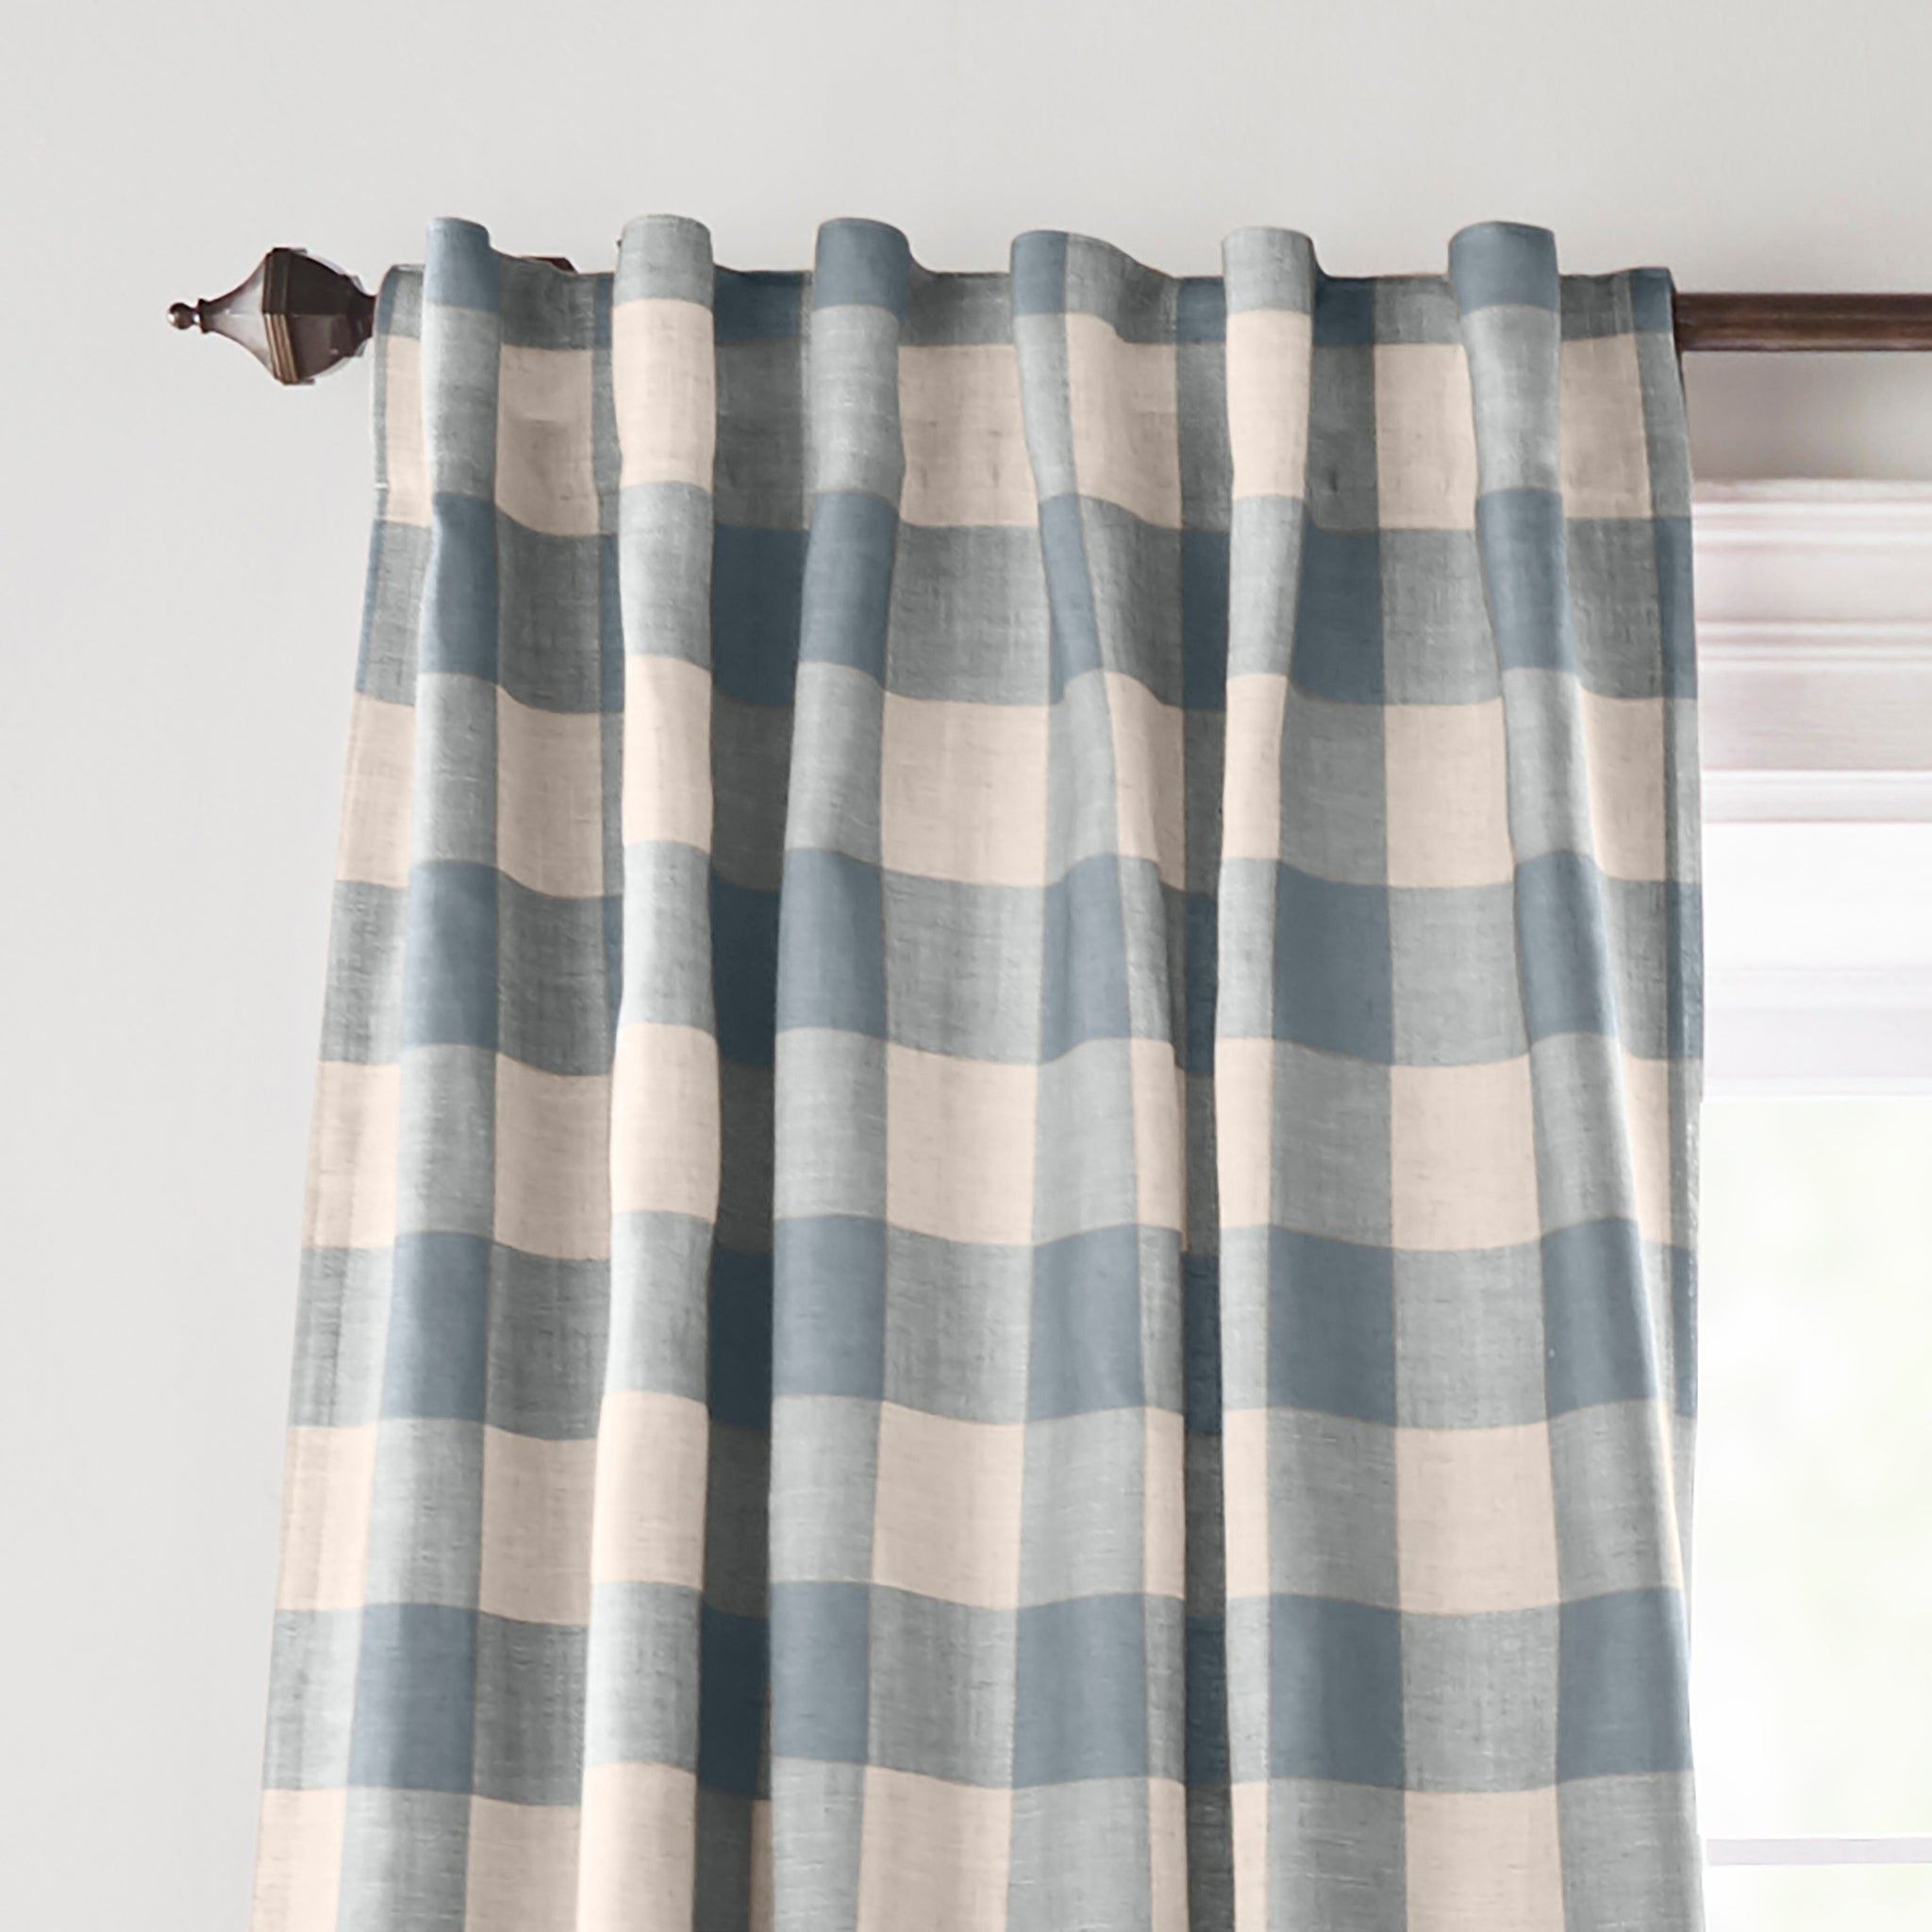 Widely Used Grainger Buffalo Check Blackout Window Curtains For Grainger Buffalo Check Blackout Window Curtain (View 2 of 20)